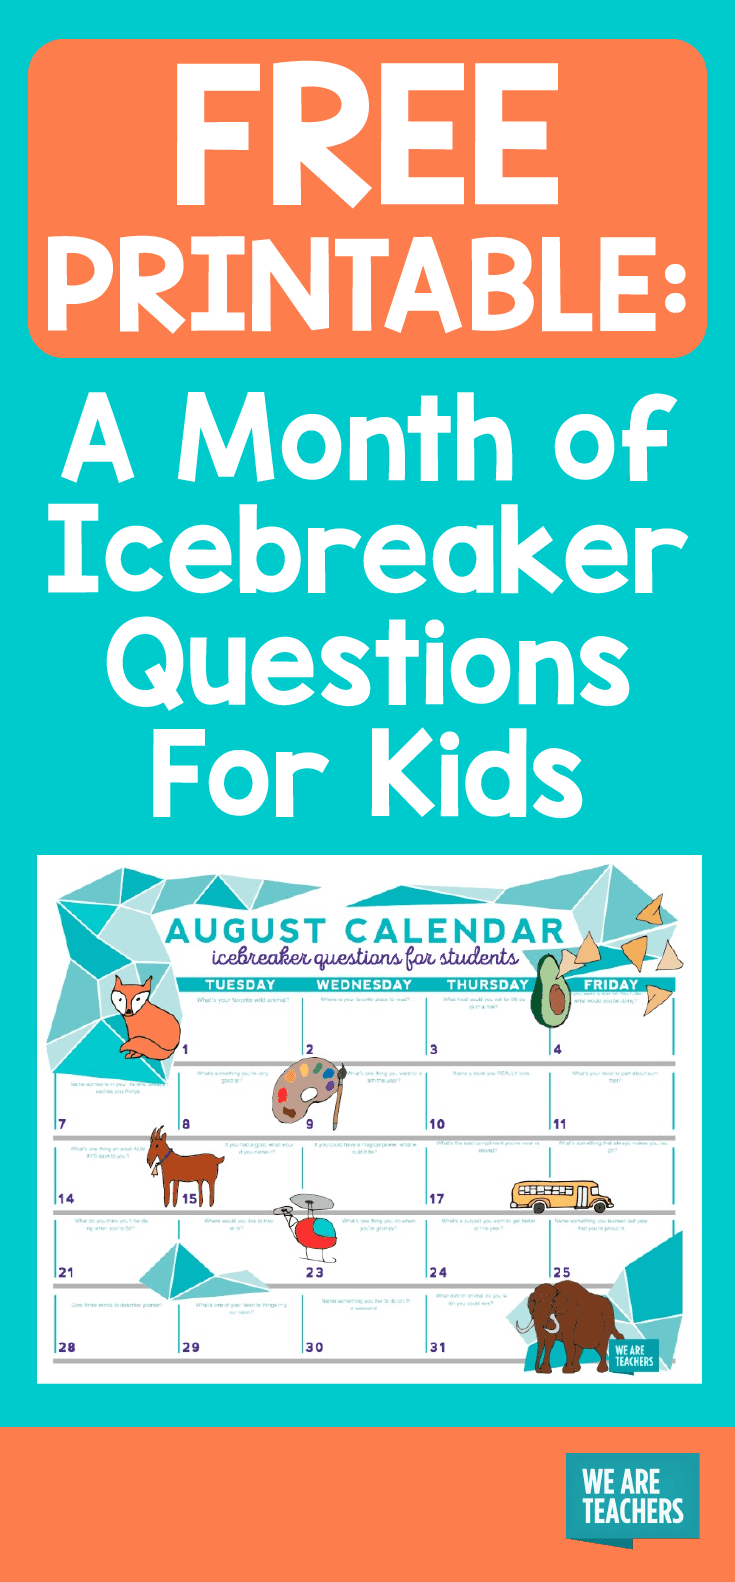 Calendar Year Question : Free printable a month of icebreaker questions for kids